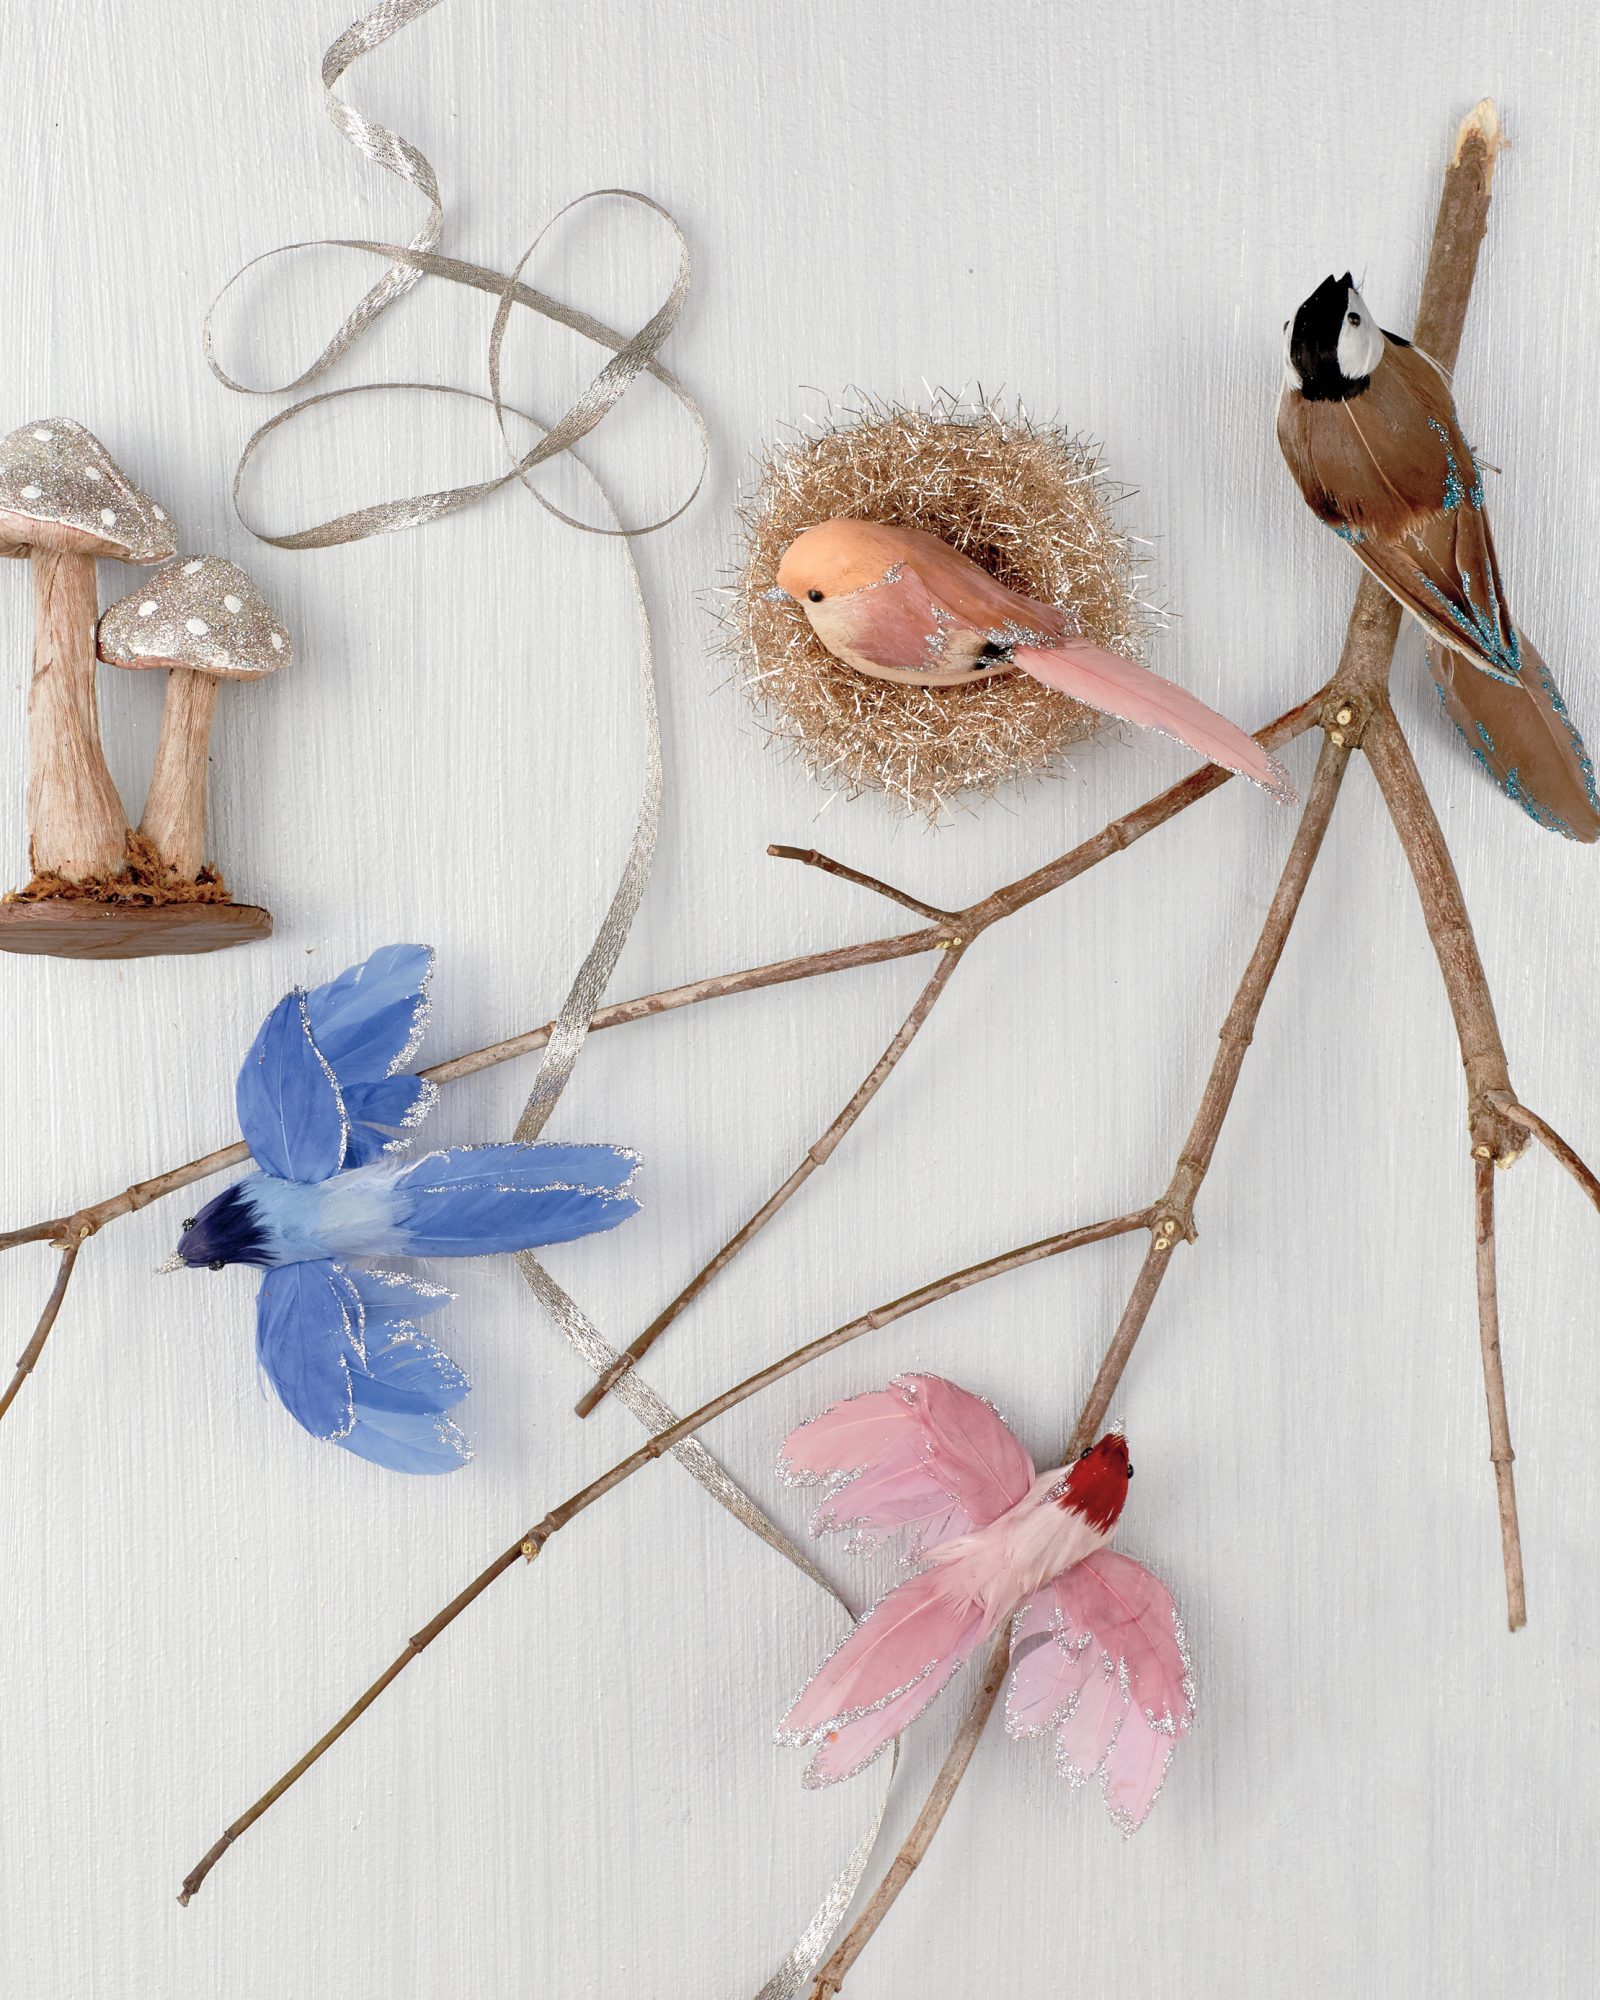 glittered birds, nests, and mushrooms